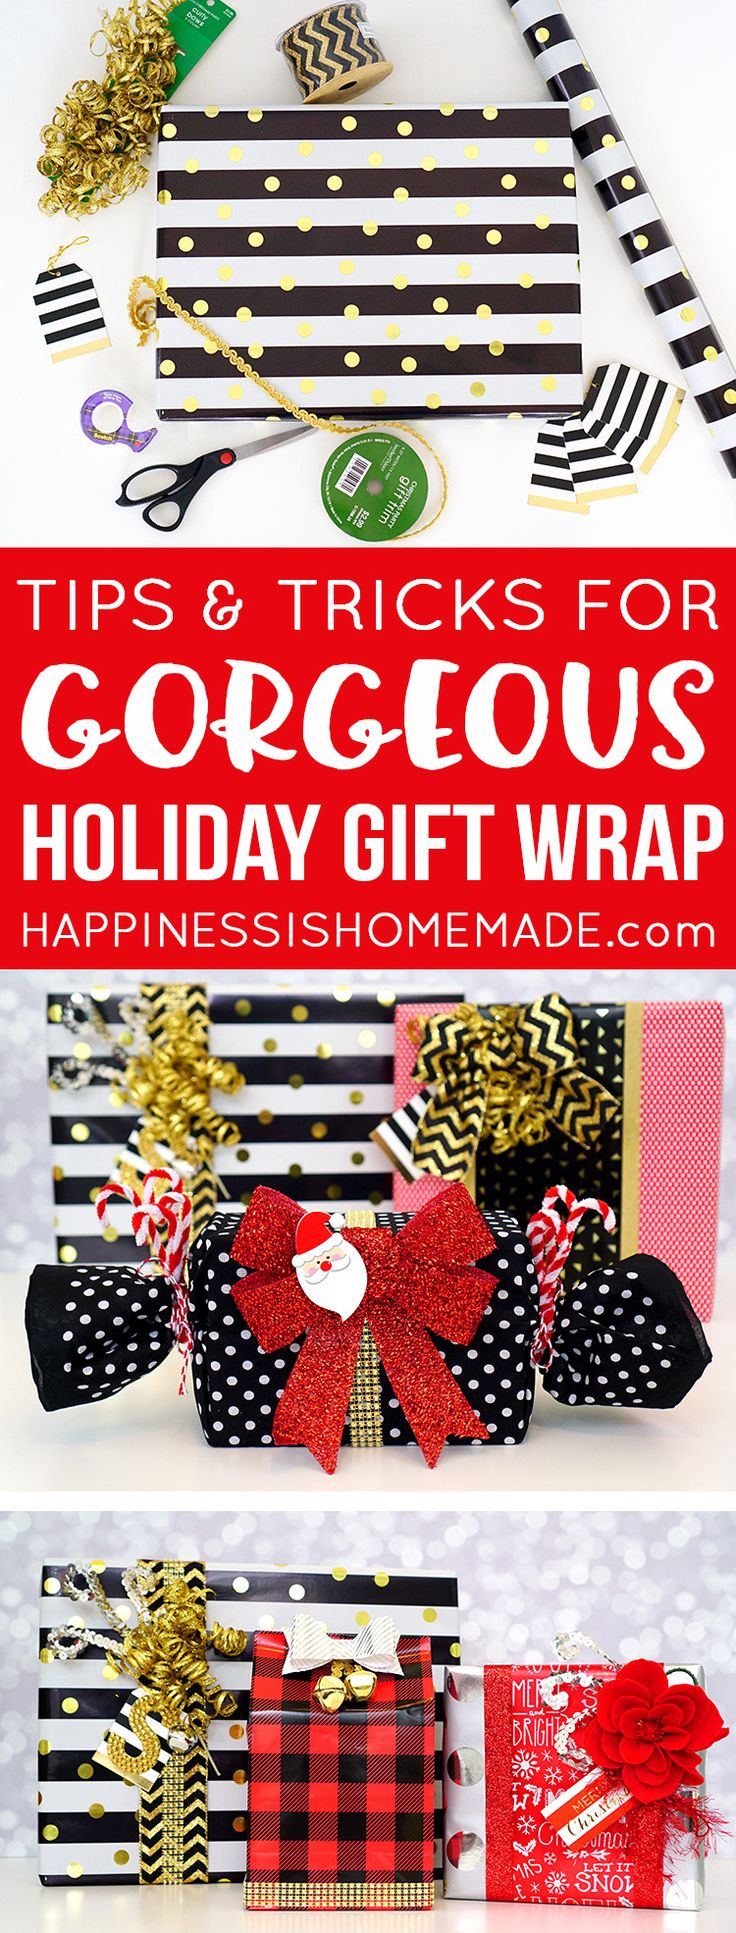 Use these handy simple tips and tricks for making your Christmas holiday gift wr...